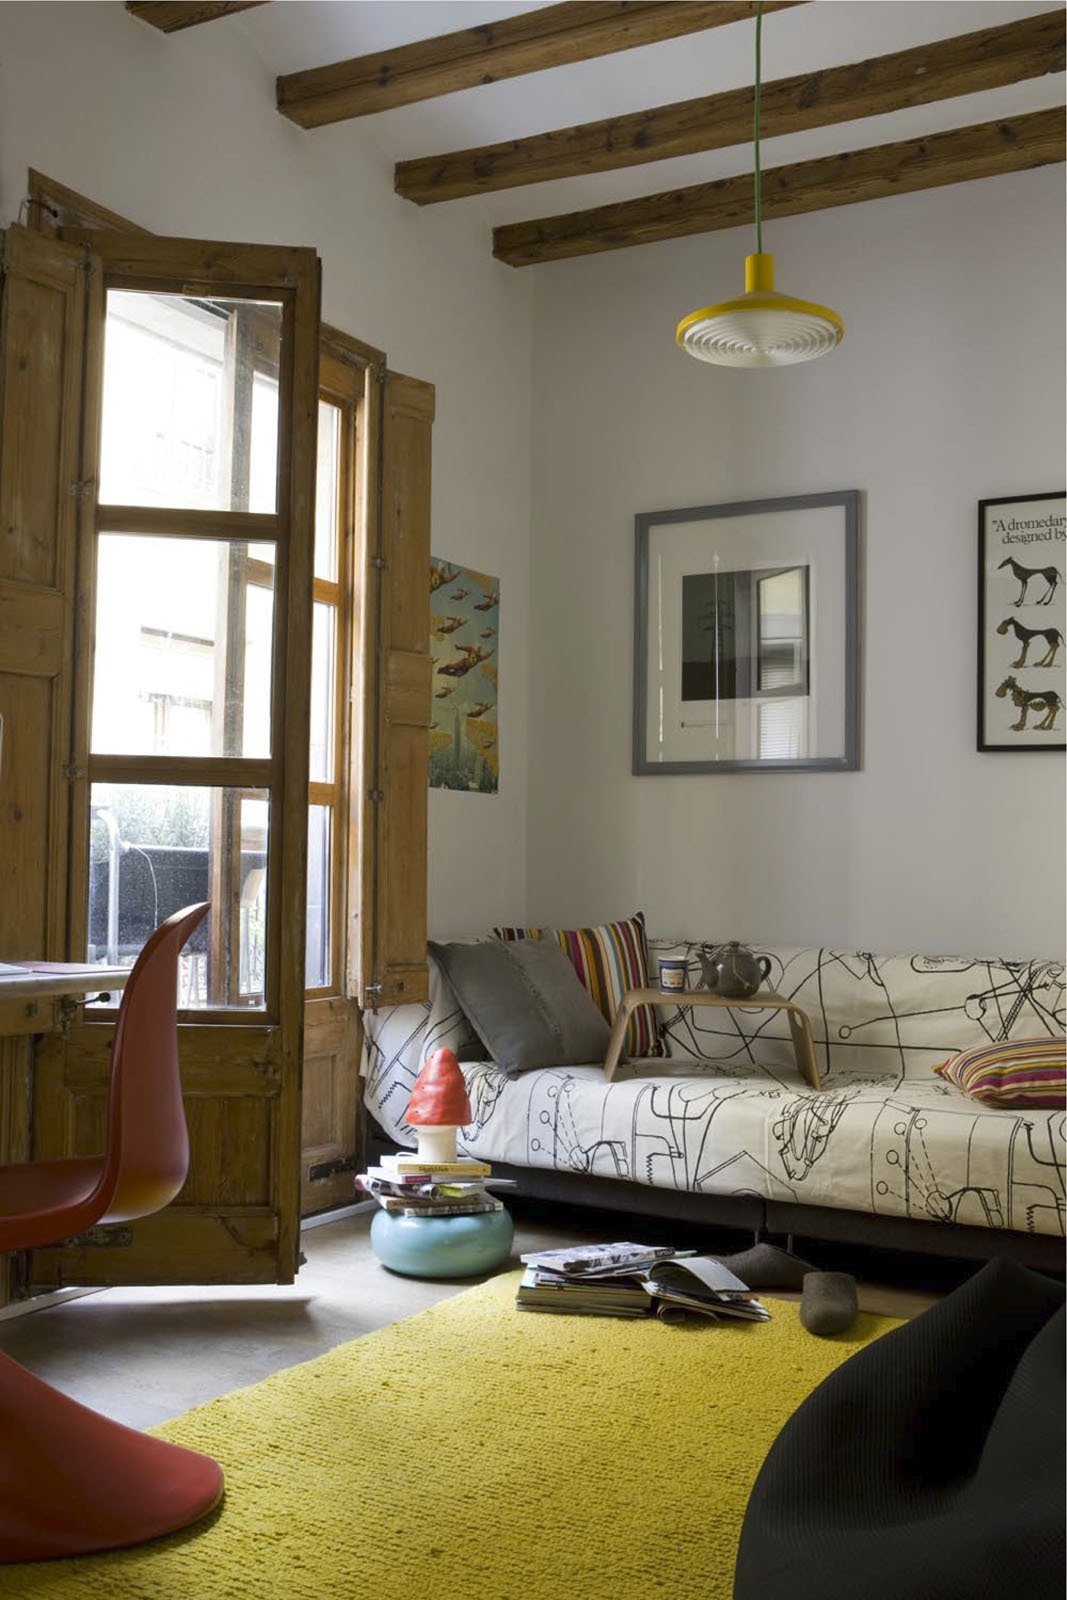 Wishing to avoid using harsh chemicals, the couple had the 18th-century beams and French doors in the living room and elsewhere sandblasted to rid them of woodlice. The rug, by Nani Marquina, is renewable and biodegradable as well as ethically produced.  Photo 9 of 10 in 10 Modern Renovations to Homes in Spain